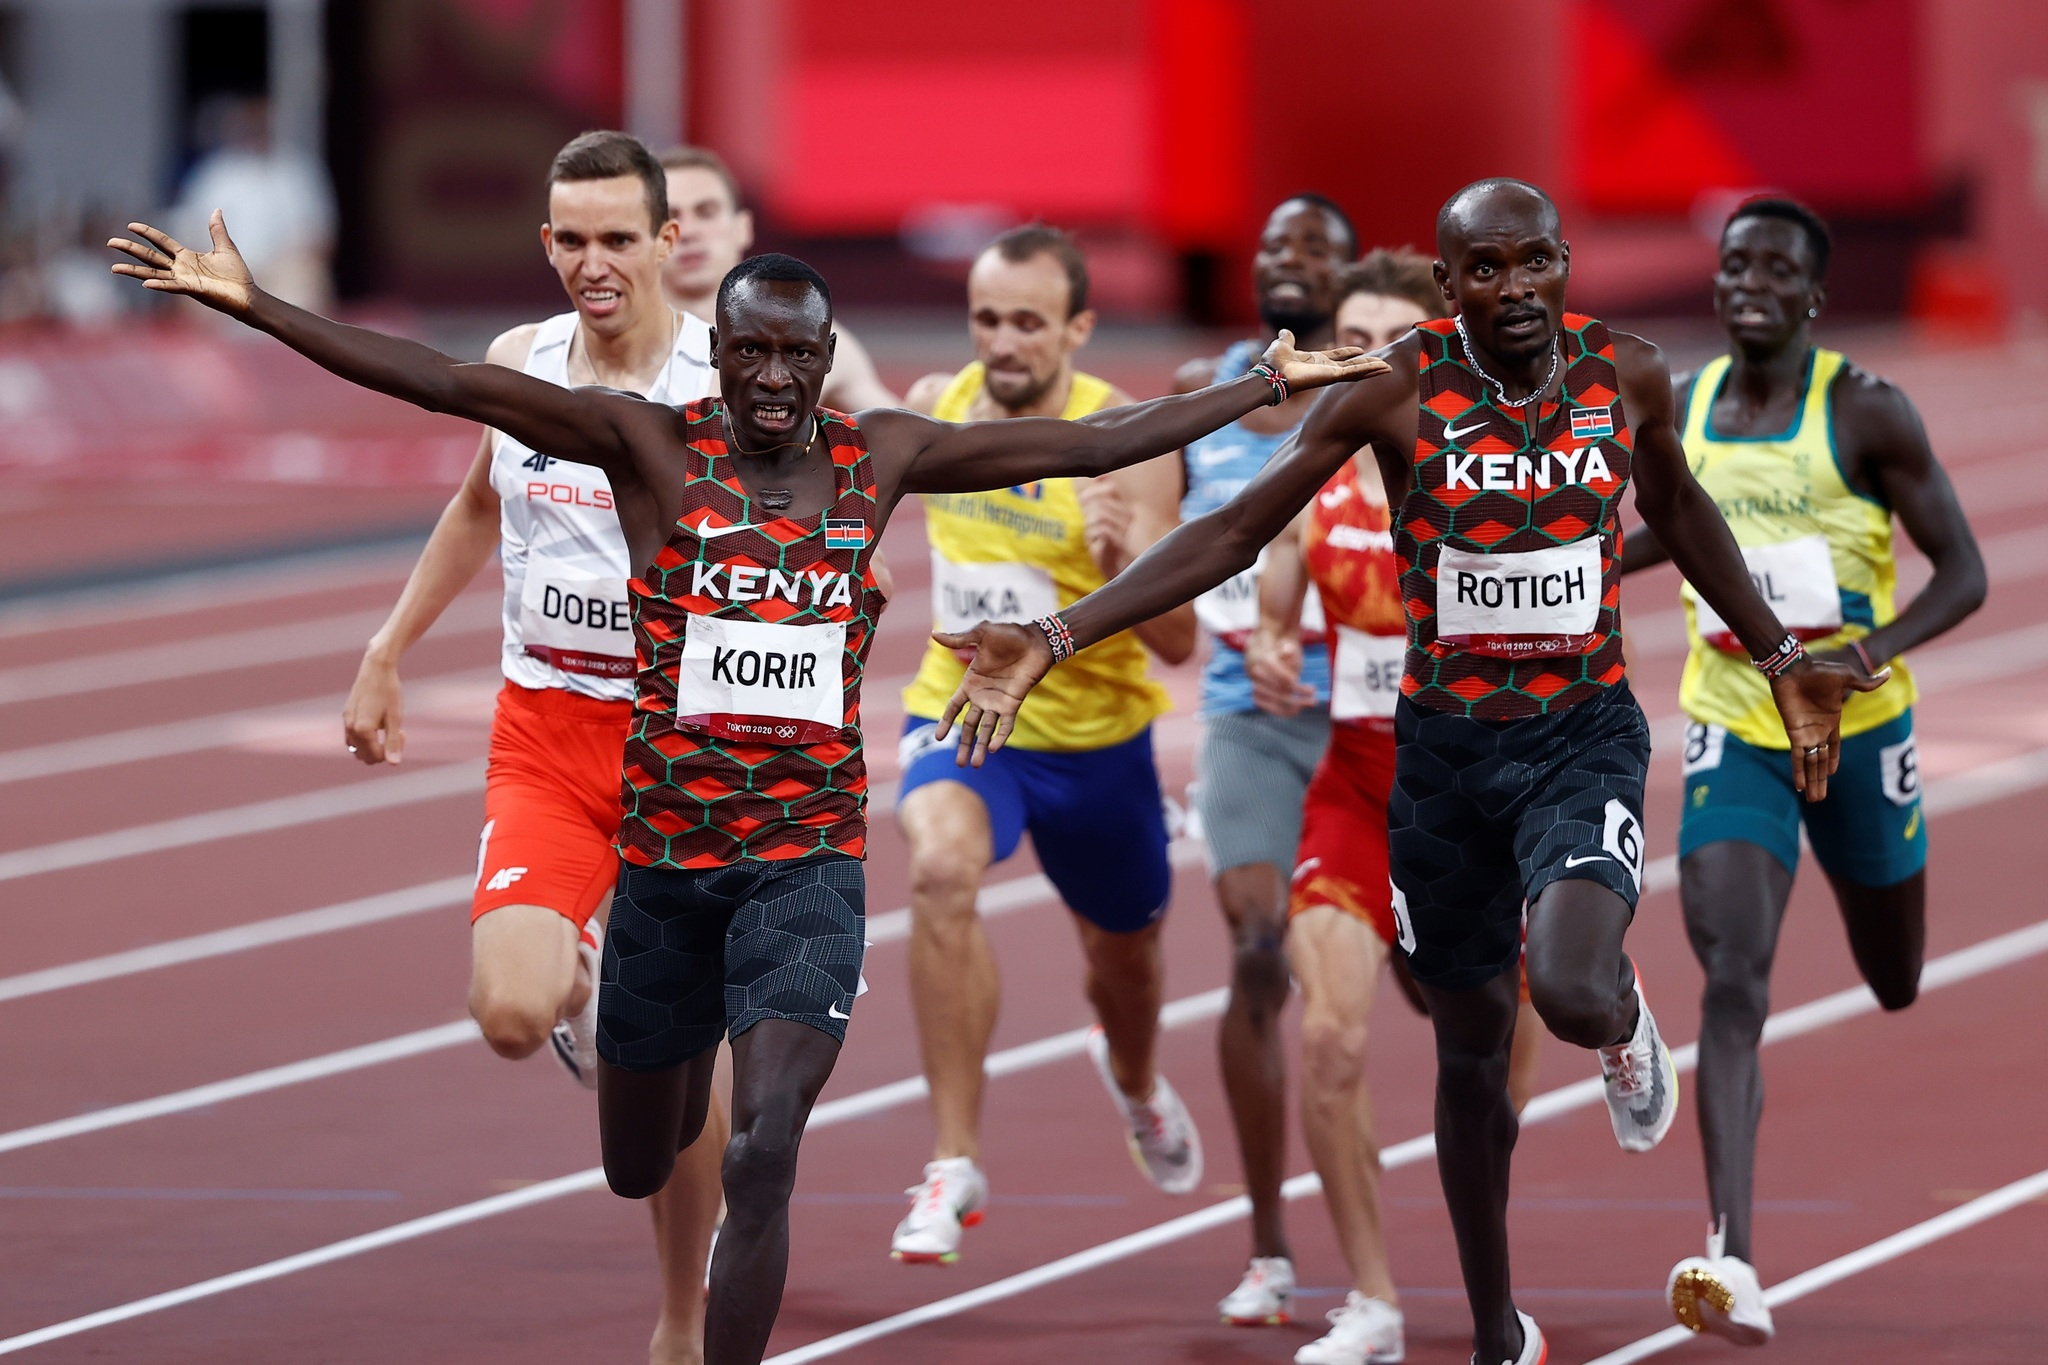 Kenya's Emmanuel Korir and Ferguson Rotich finish first and second respectively in the 800m race.